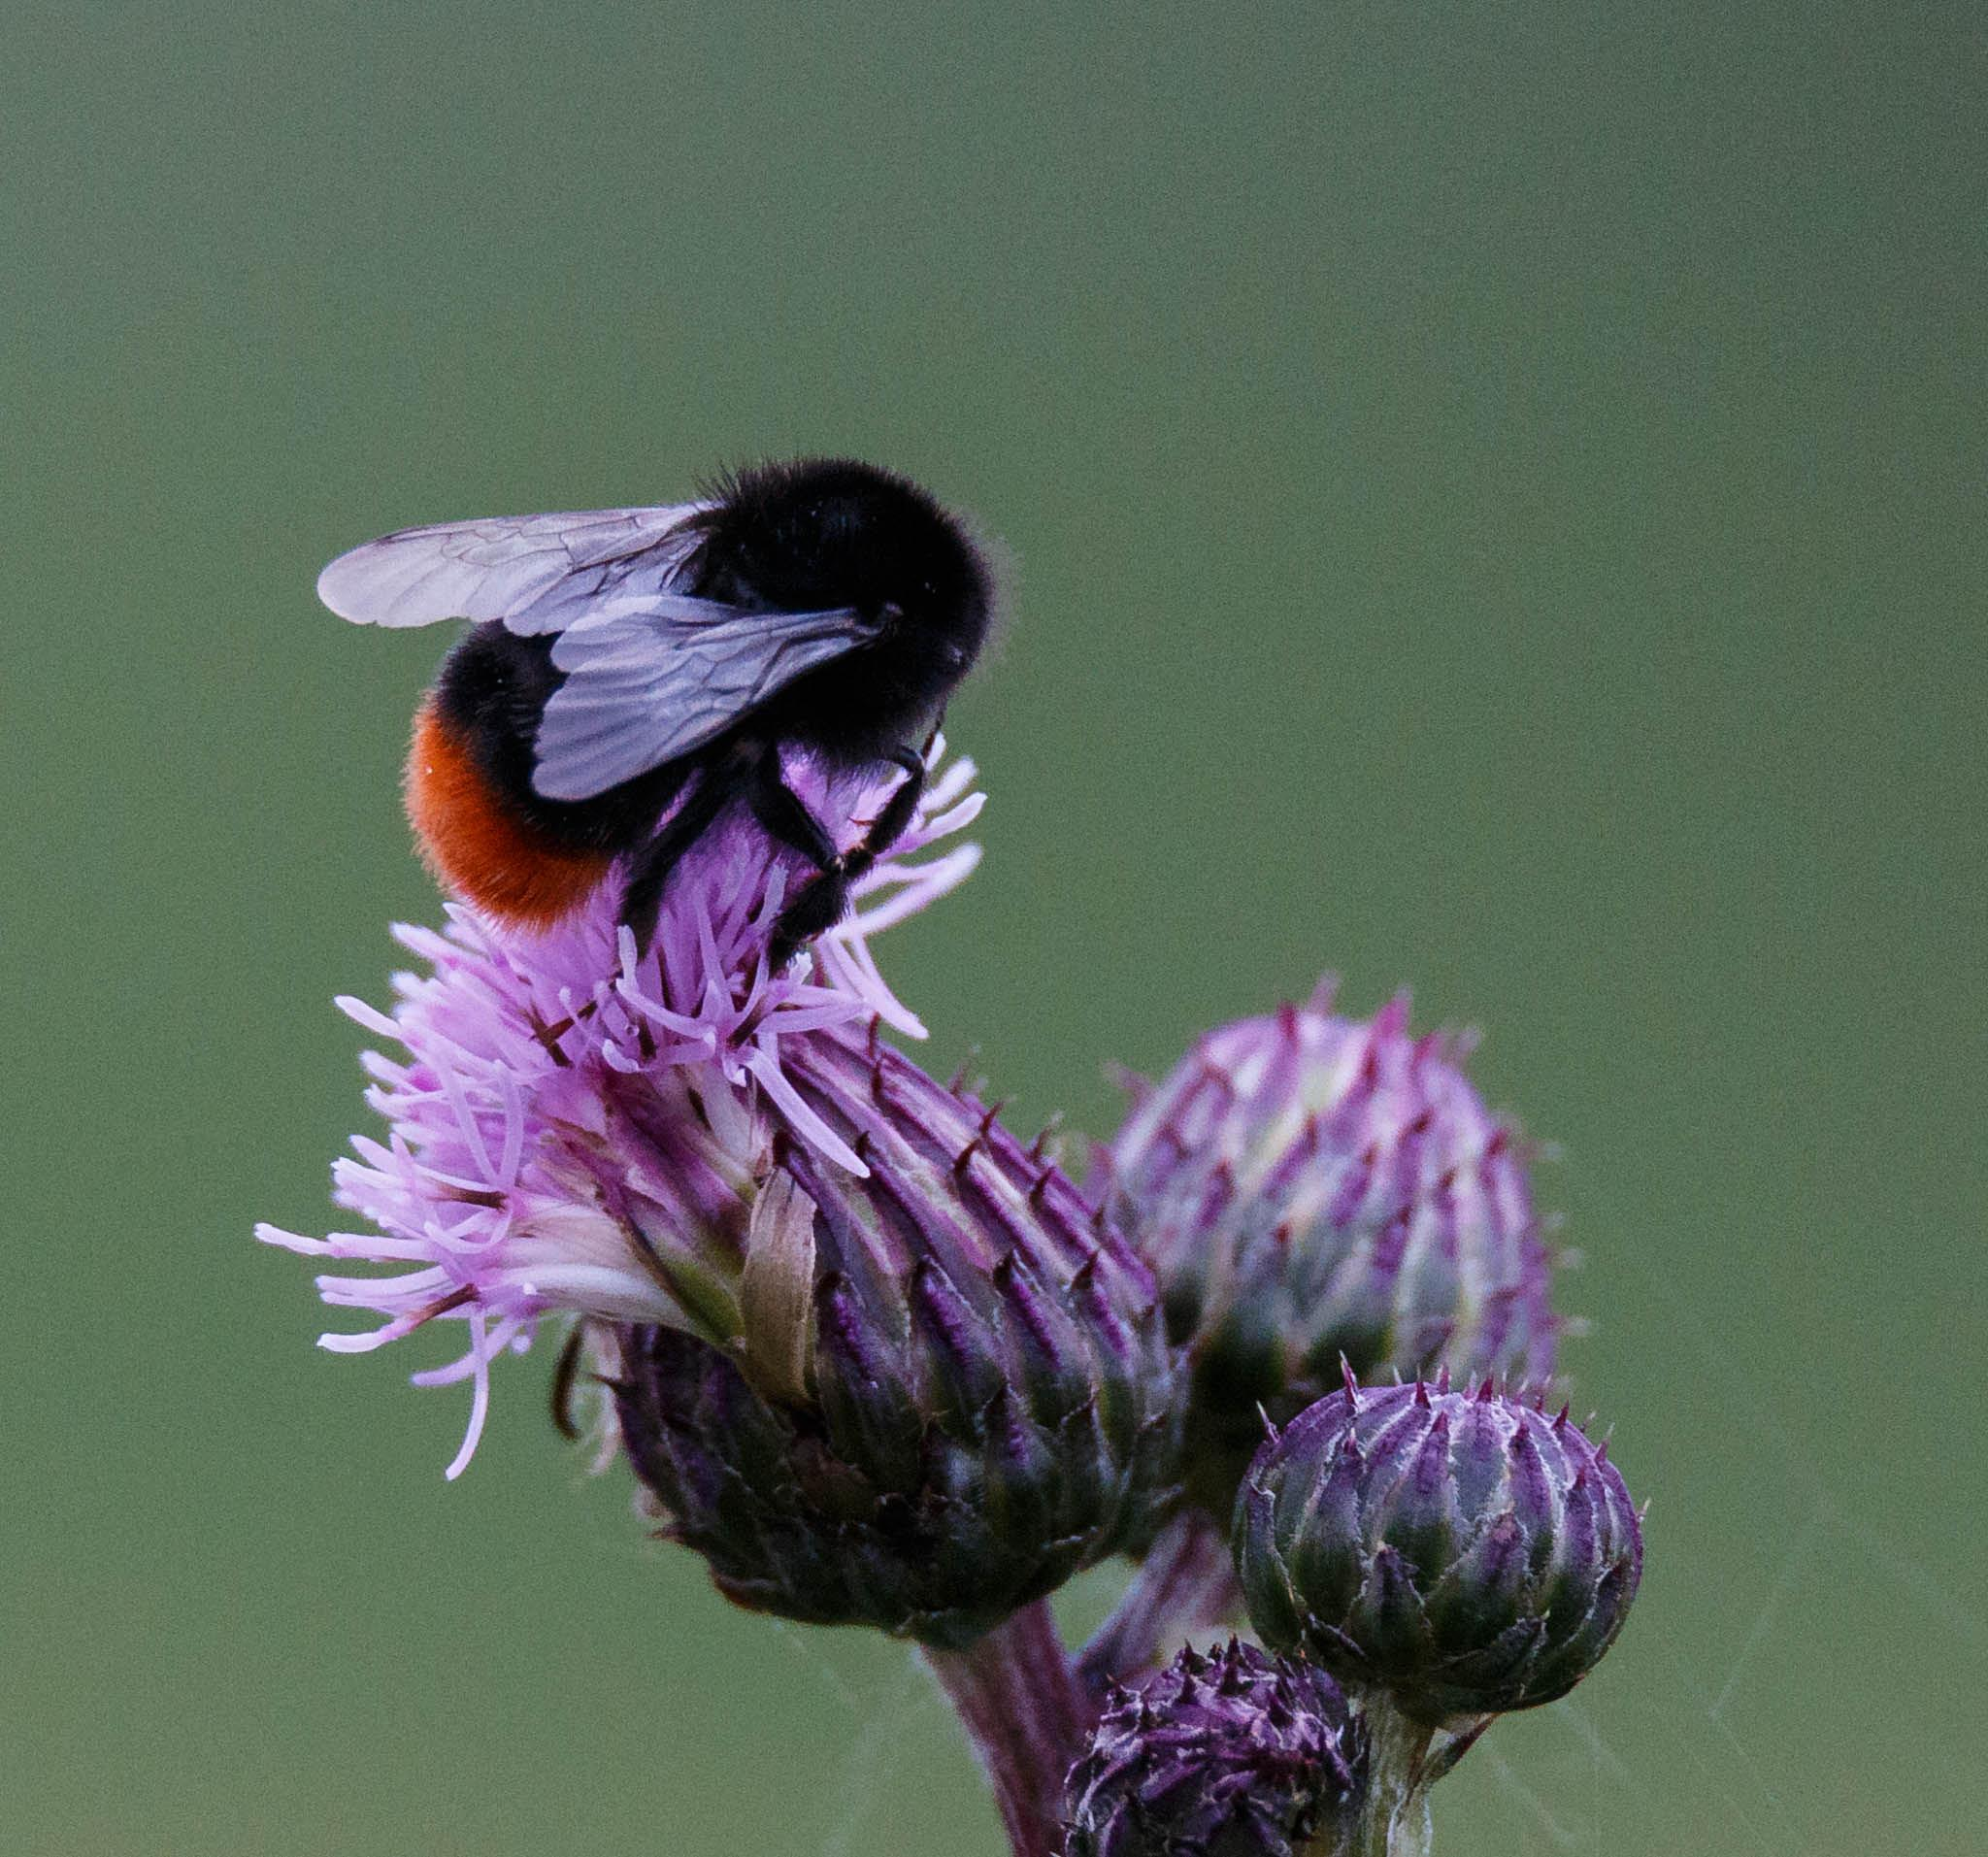 Red-tailed bumblebee by tomdalhoy